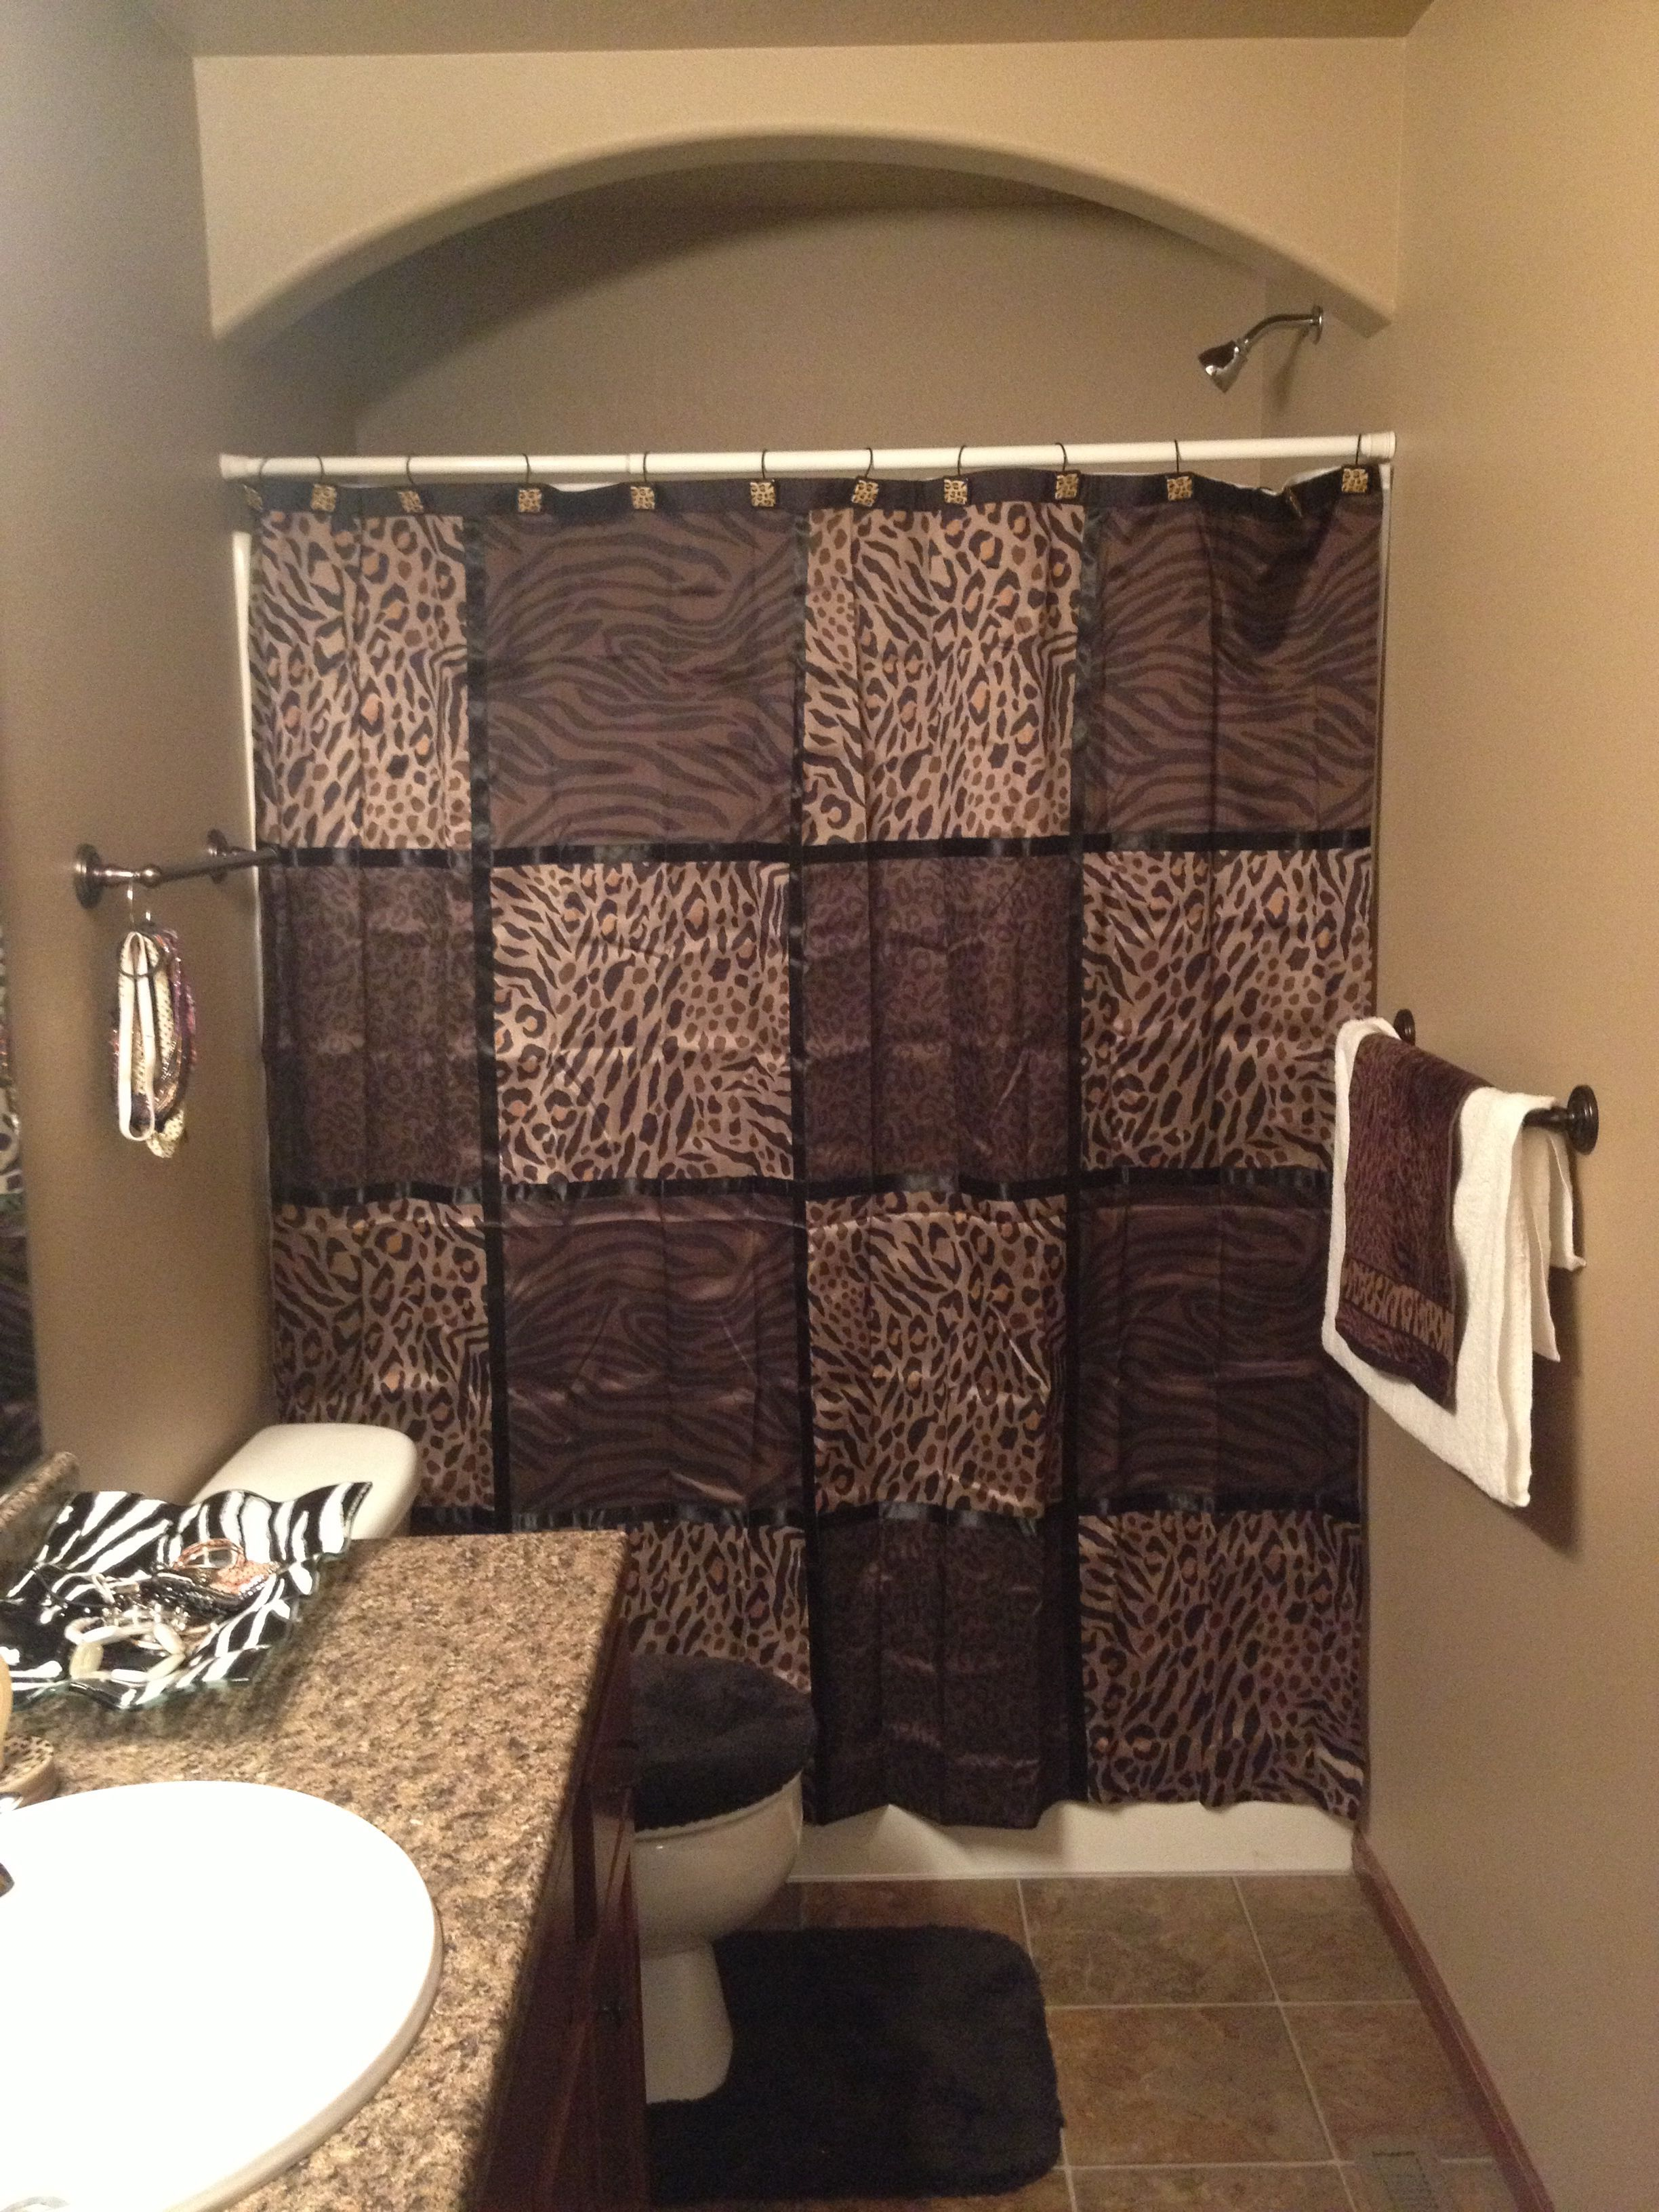 Bathroom brown and cheetah decor Love this